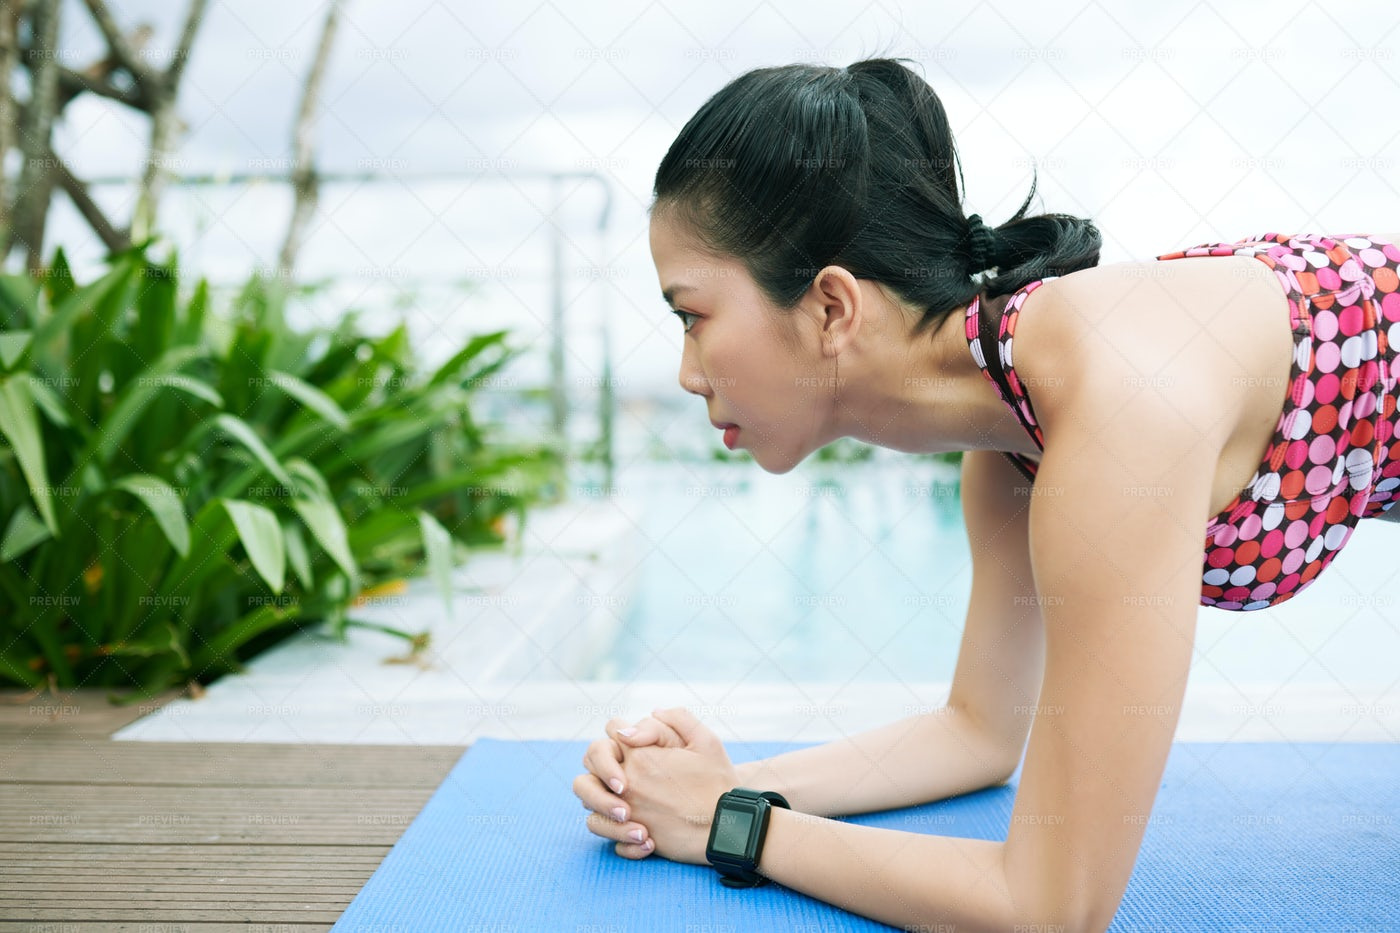 Asian Woman At The Poolside: Stock Photos